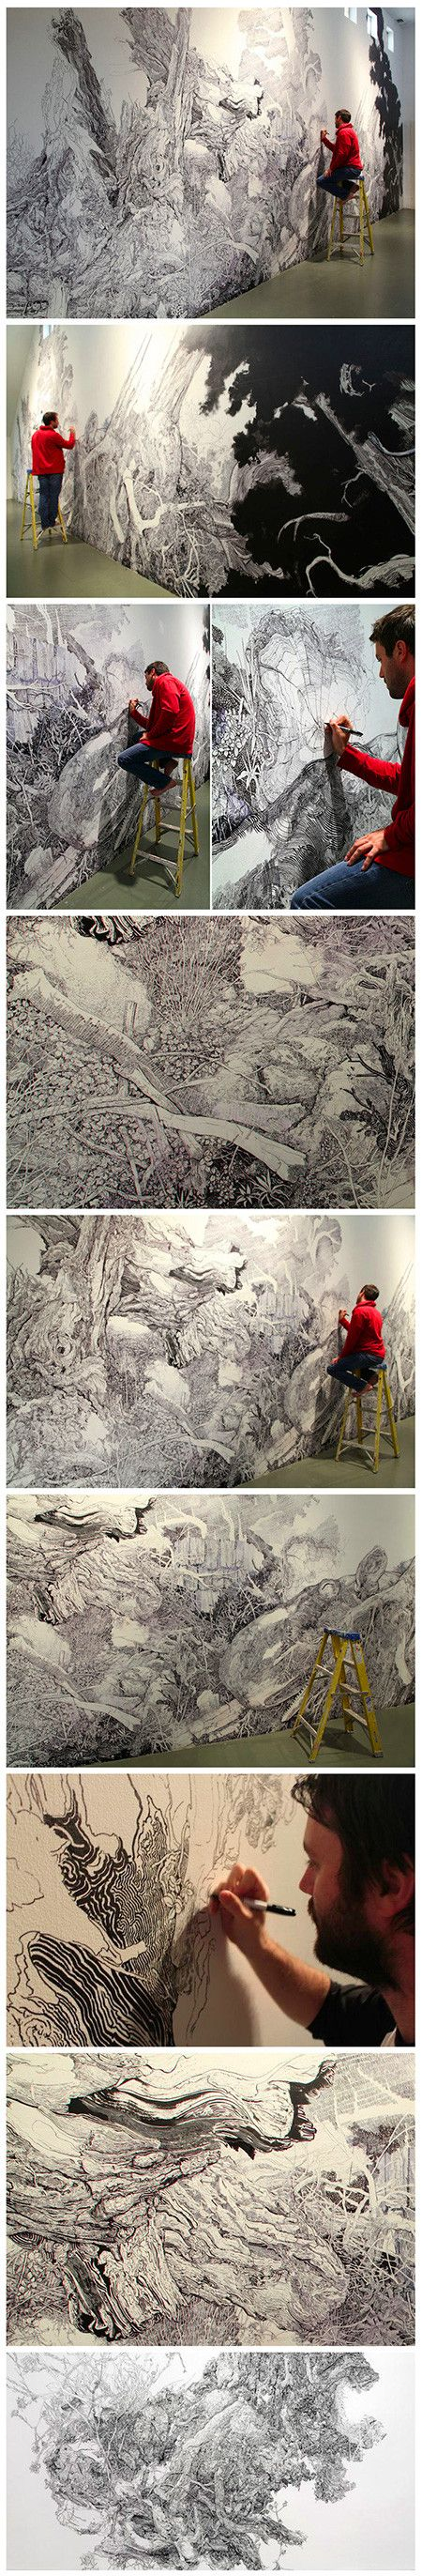 After seven long months of work, California-based artist Sean Sullivan finished Grand Pale Maw, an expansive drawing that covered the wall of a hallway in the Los Angeles Contemporary Exhibitions (LACE) gallery. Using just a Sharpie, the artist started drawing with the image of a fallen oak tree in his mind, but his imagination quickly took off from there as he painstakingly drew heaps of rotting wood, fallen branches, knots and fissures, wild grass and plants, bushy leaves, and even a ...